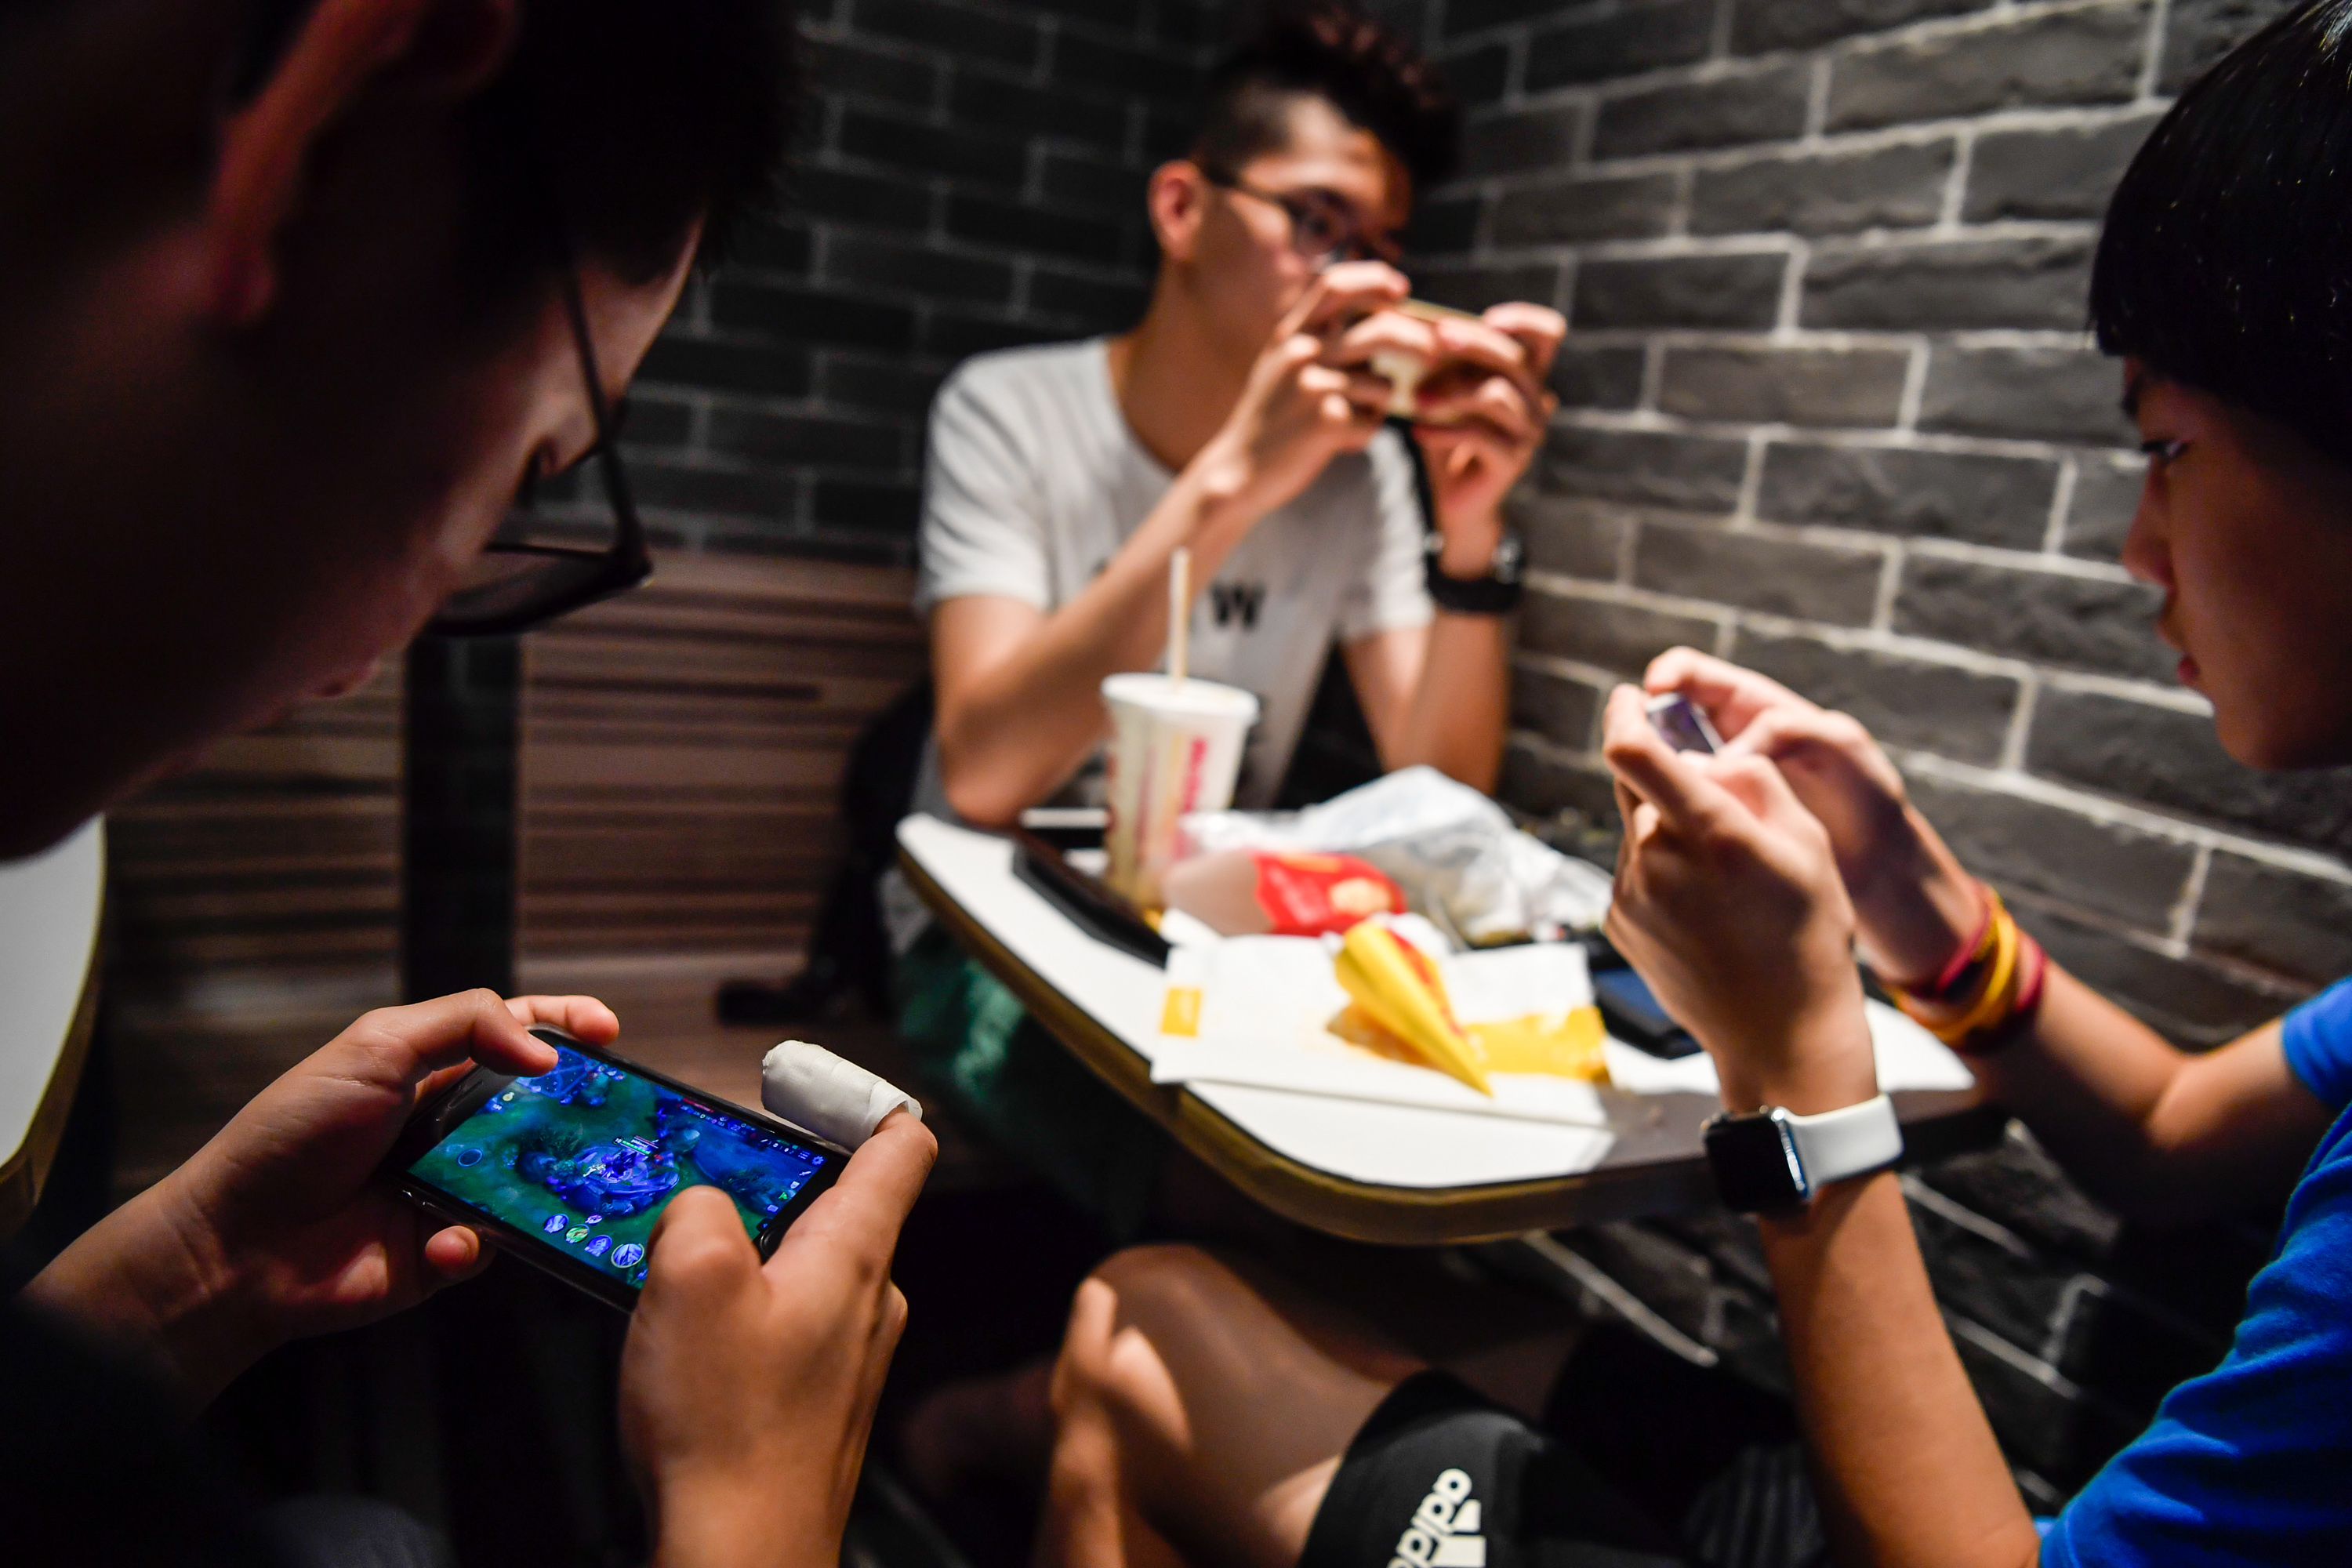 'King of Glory' ─ the latest craze to engulf mobile gaming